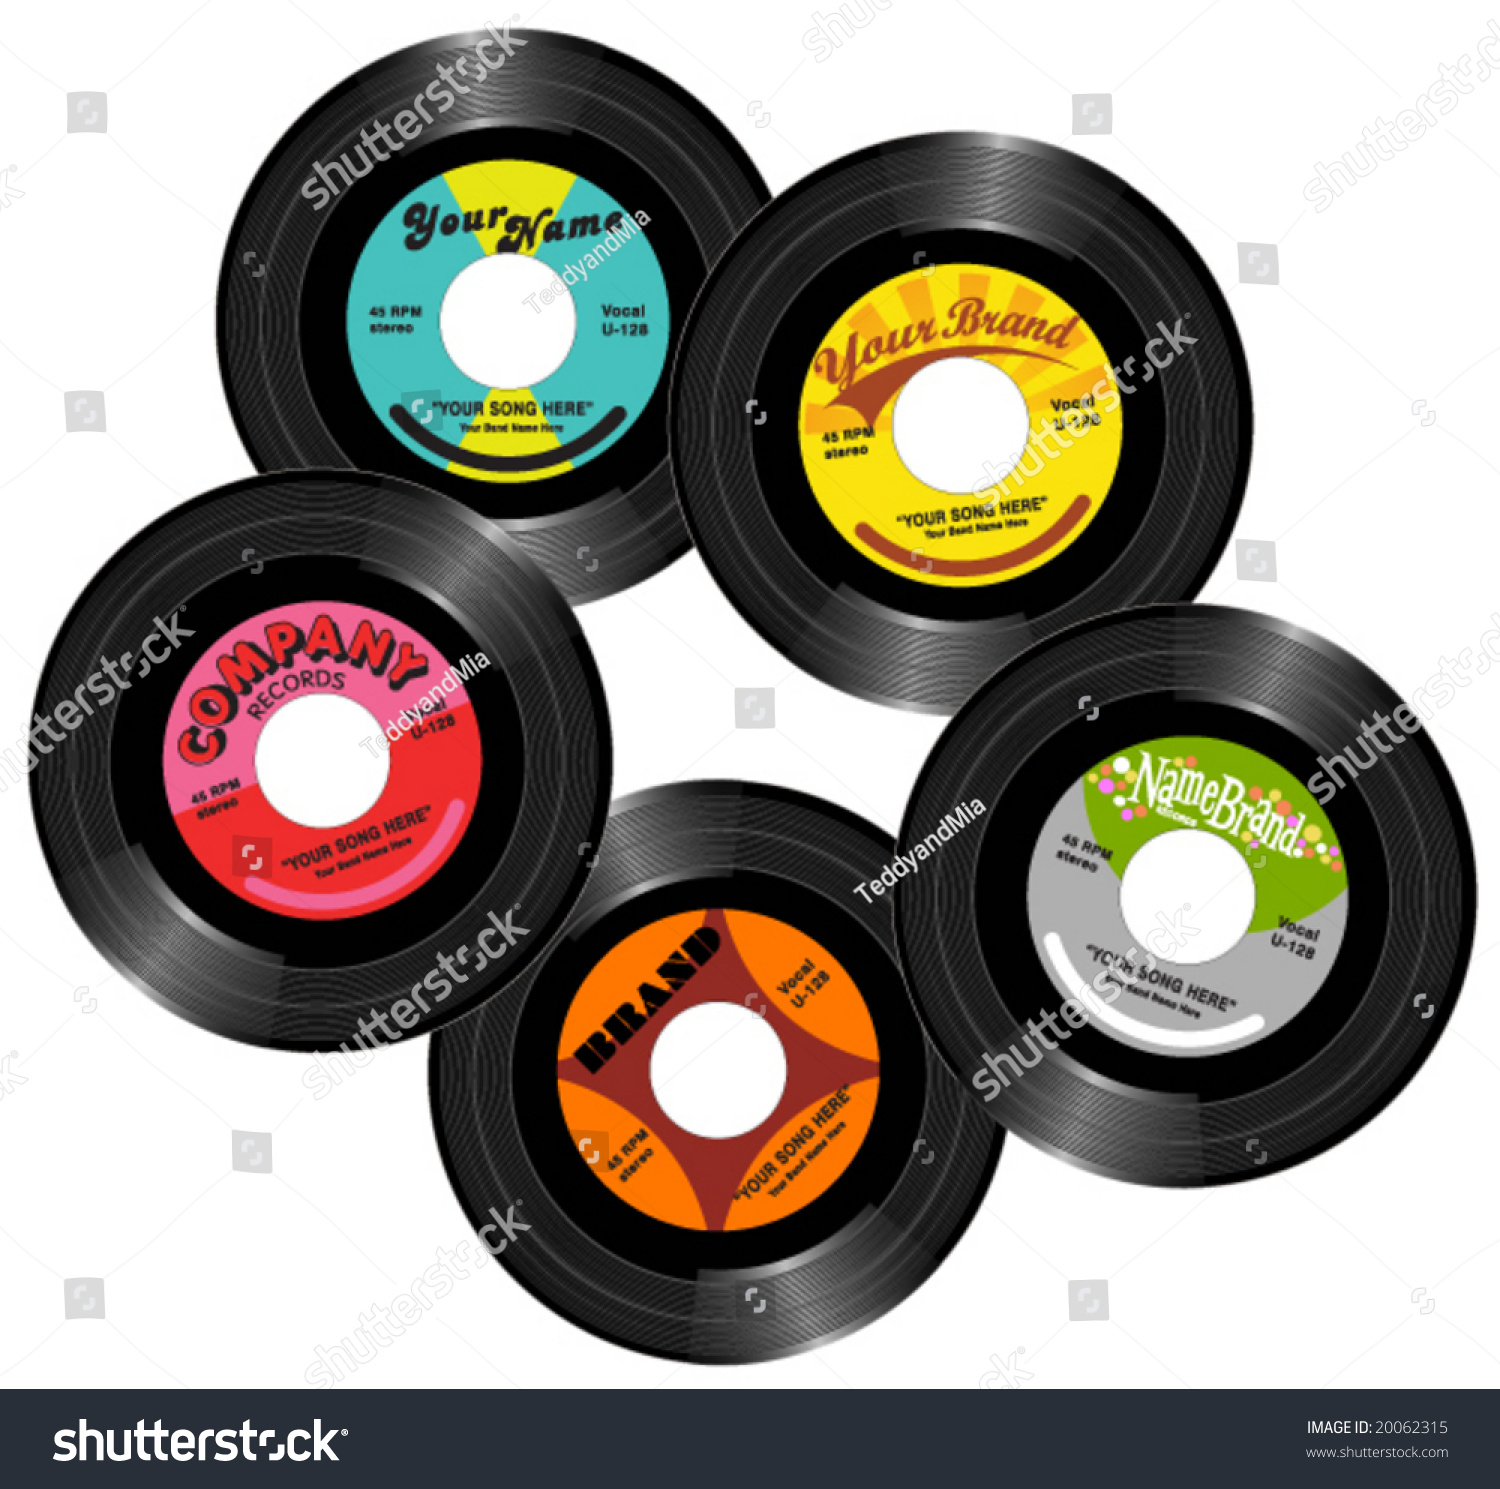 Vintage 45 Record Labels Stock Vector Illustration